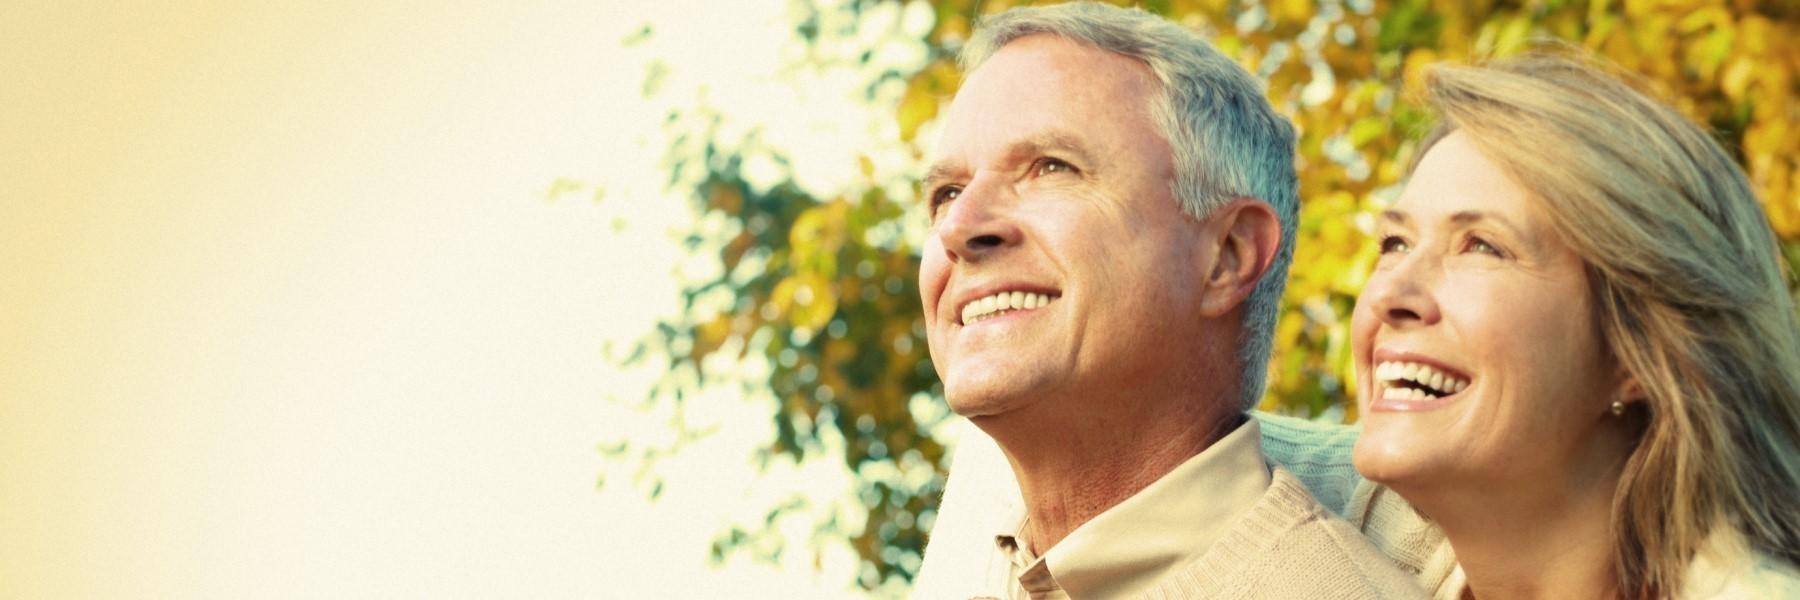 Older man and woman smiling | Dentist Chesterfield MO